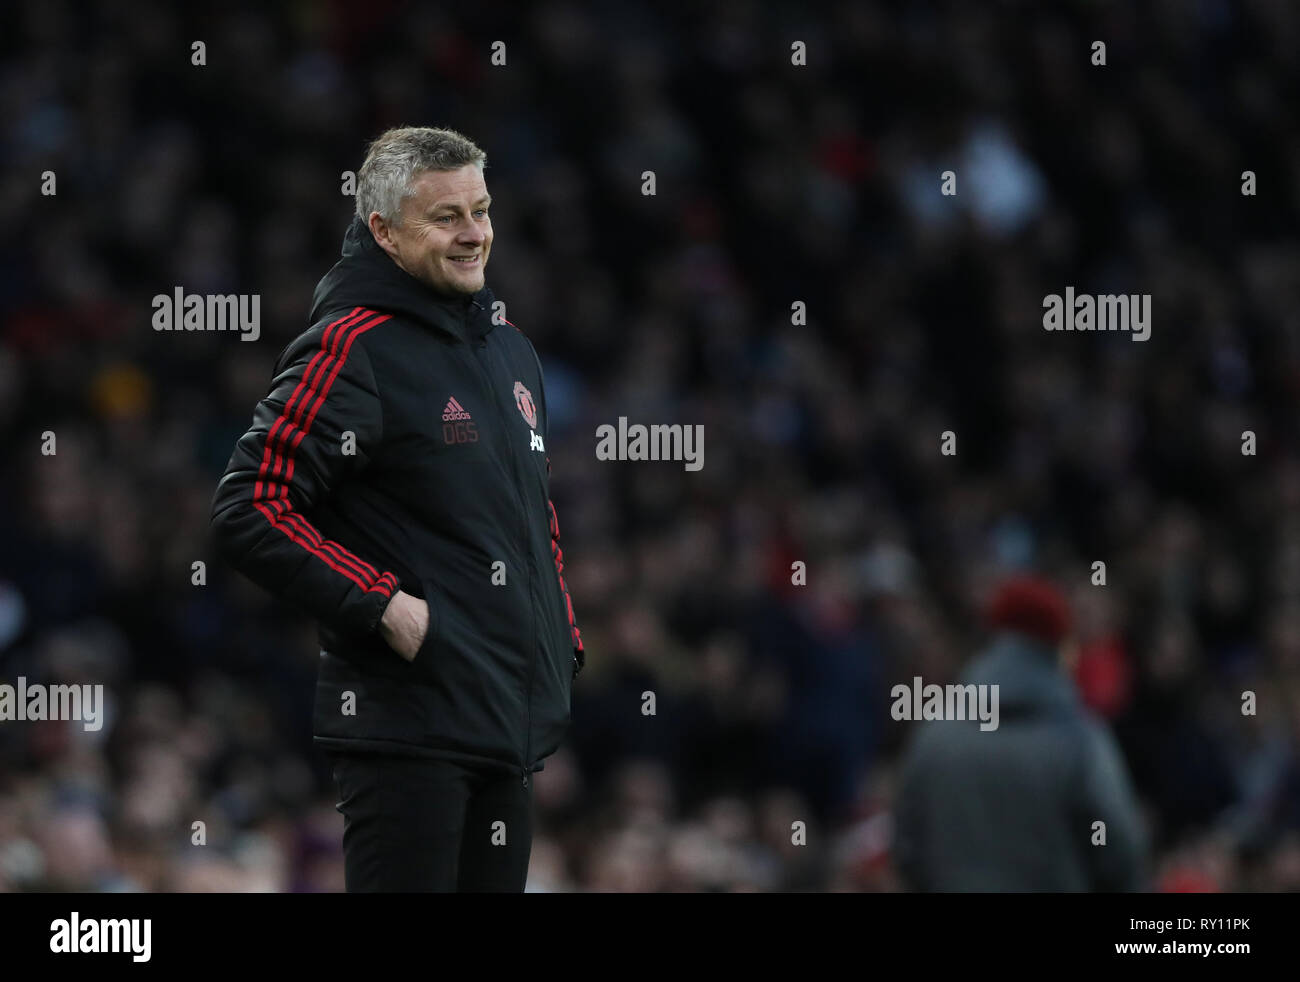 London, UK. 10th Mar, 2019. Ole Gunnar Solskjaer (Man Utd caretaker manager) at the Arsenal v Manchester United English Premier League football match at The Emirates Stadium, London, on March 10, 2019. **Editorial use only, license required for commercial use. No use in betting, games or a single club/league/player publications** Credit: Paul Marriott/Alamy Live News - Stock Image